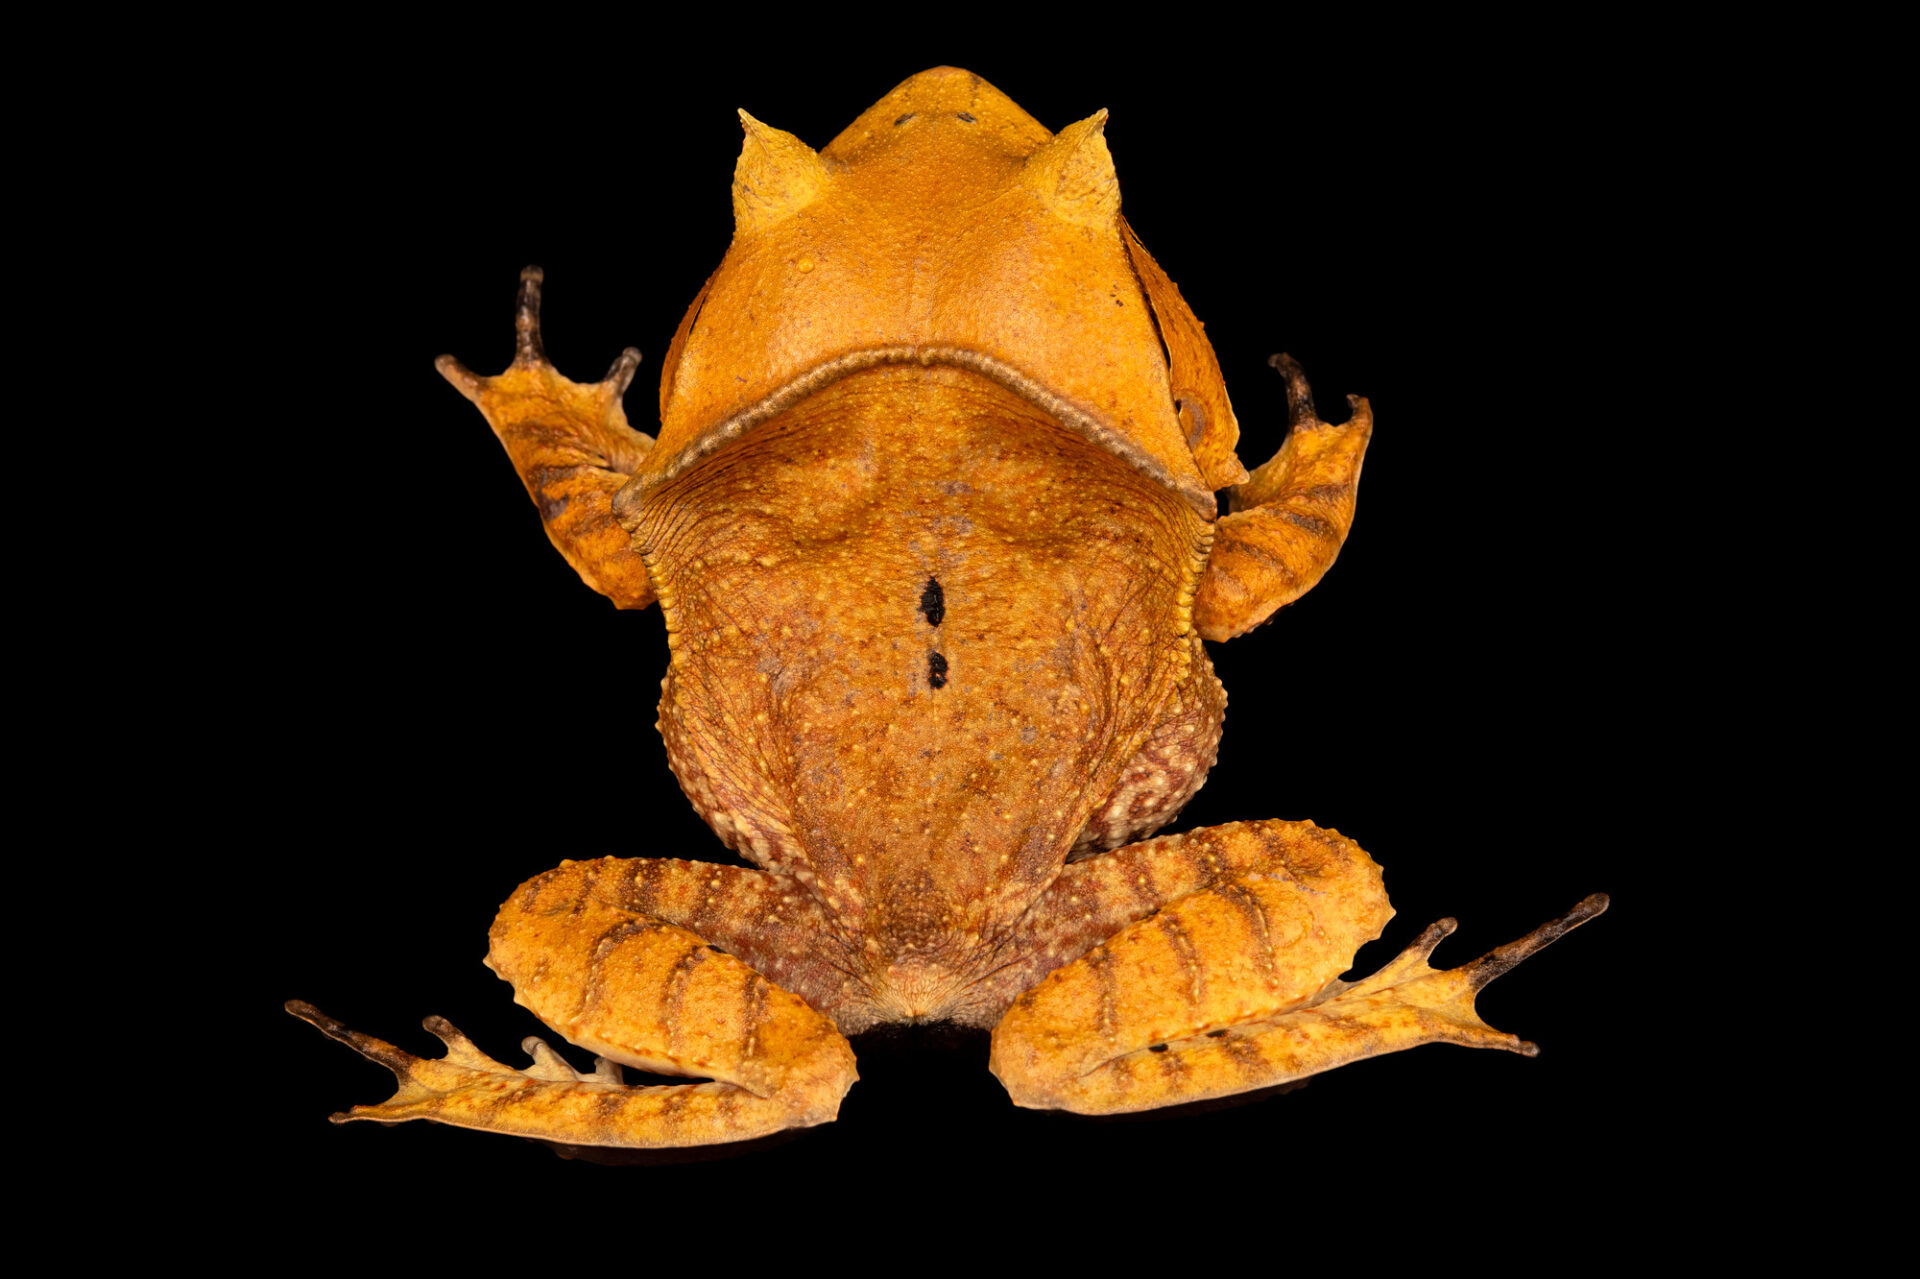 Photo: A Spix's horned treefrog (Hemiphractus scutatus) at Balsa de los Sapos.